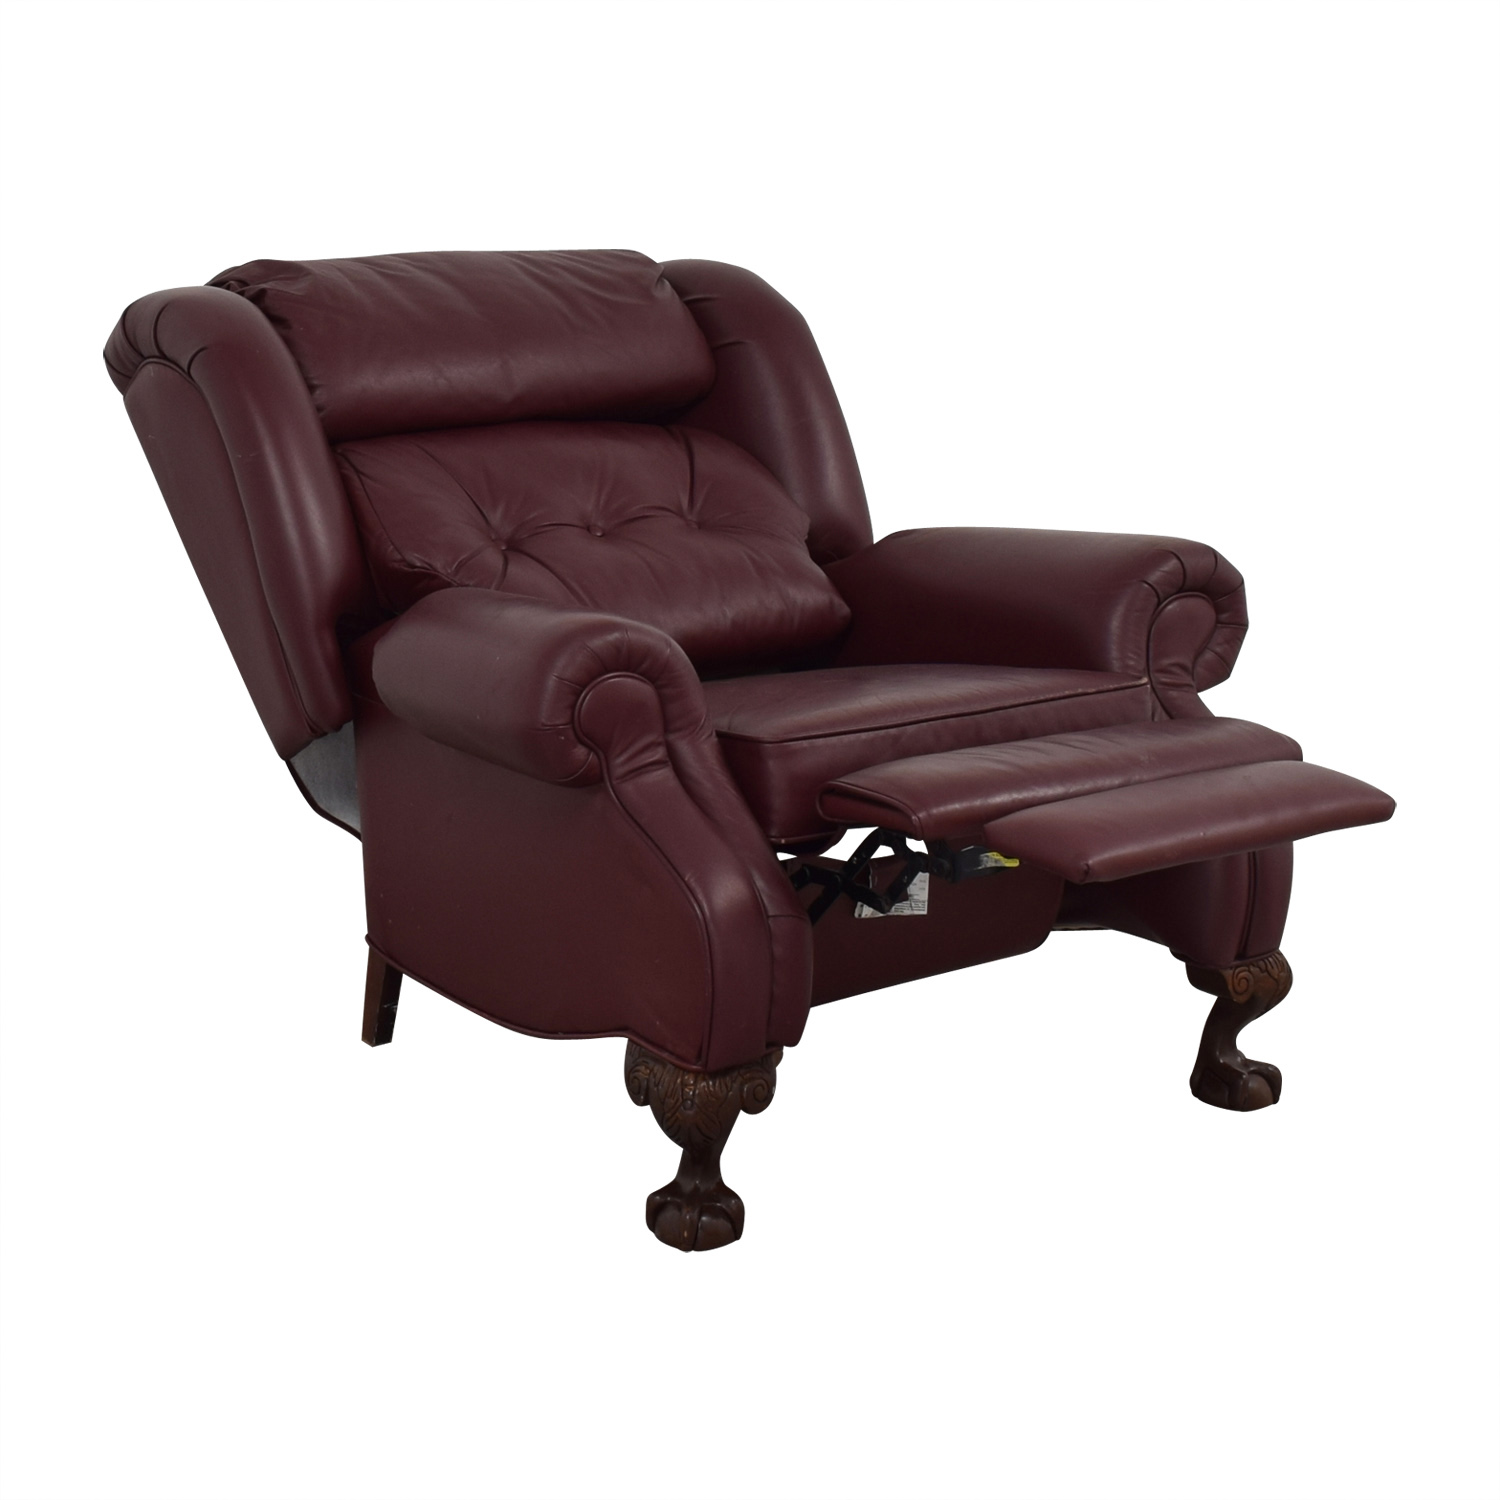 PeopLoungers PeopLoungers Burgundy Recliner price